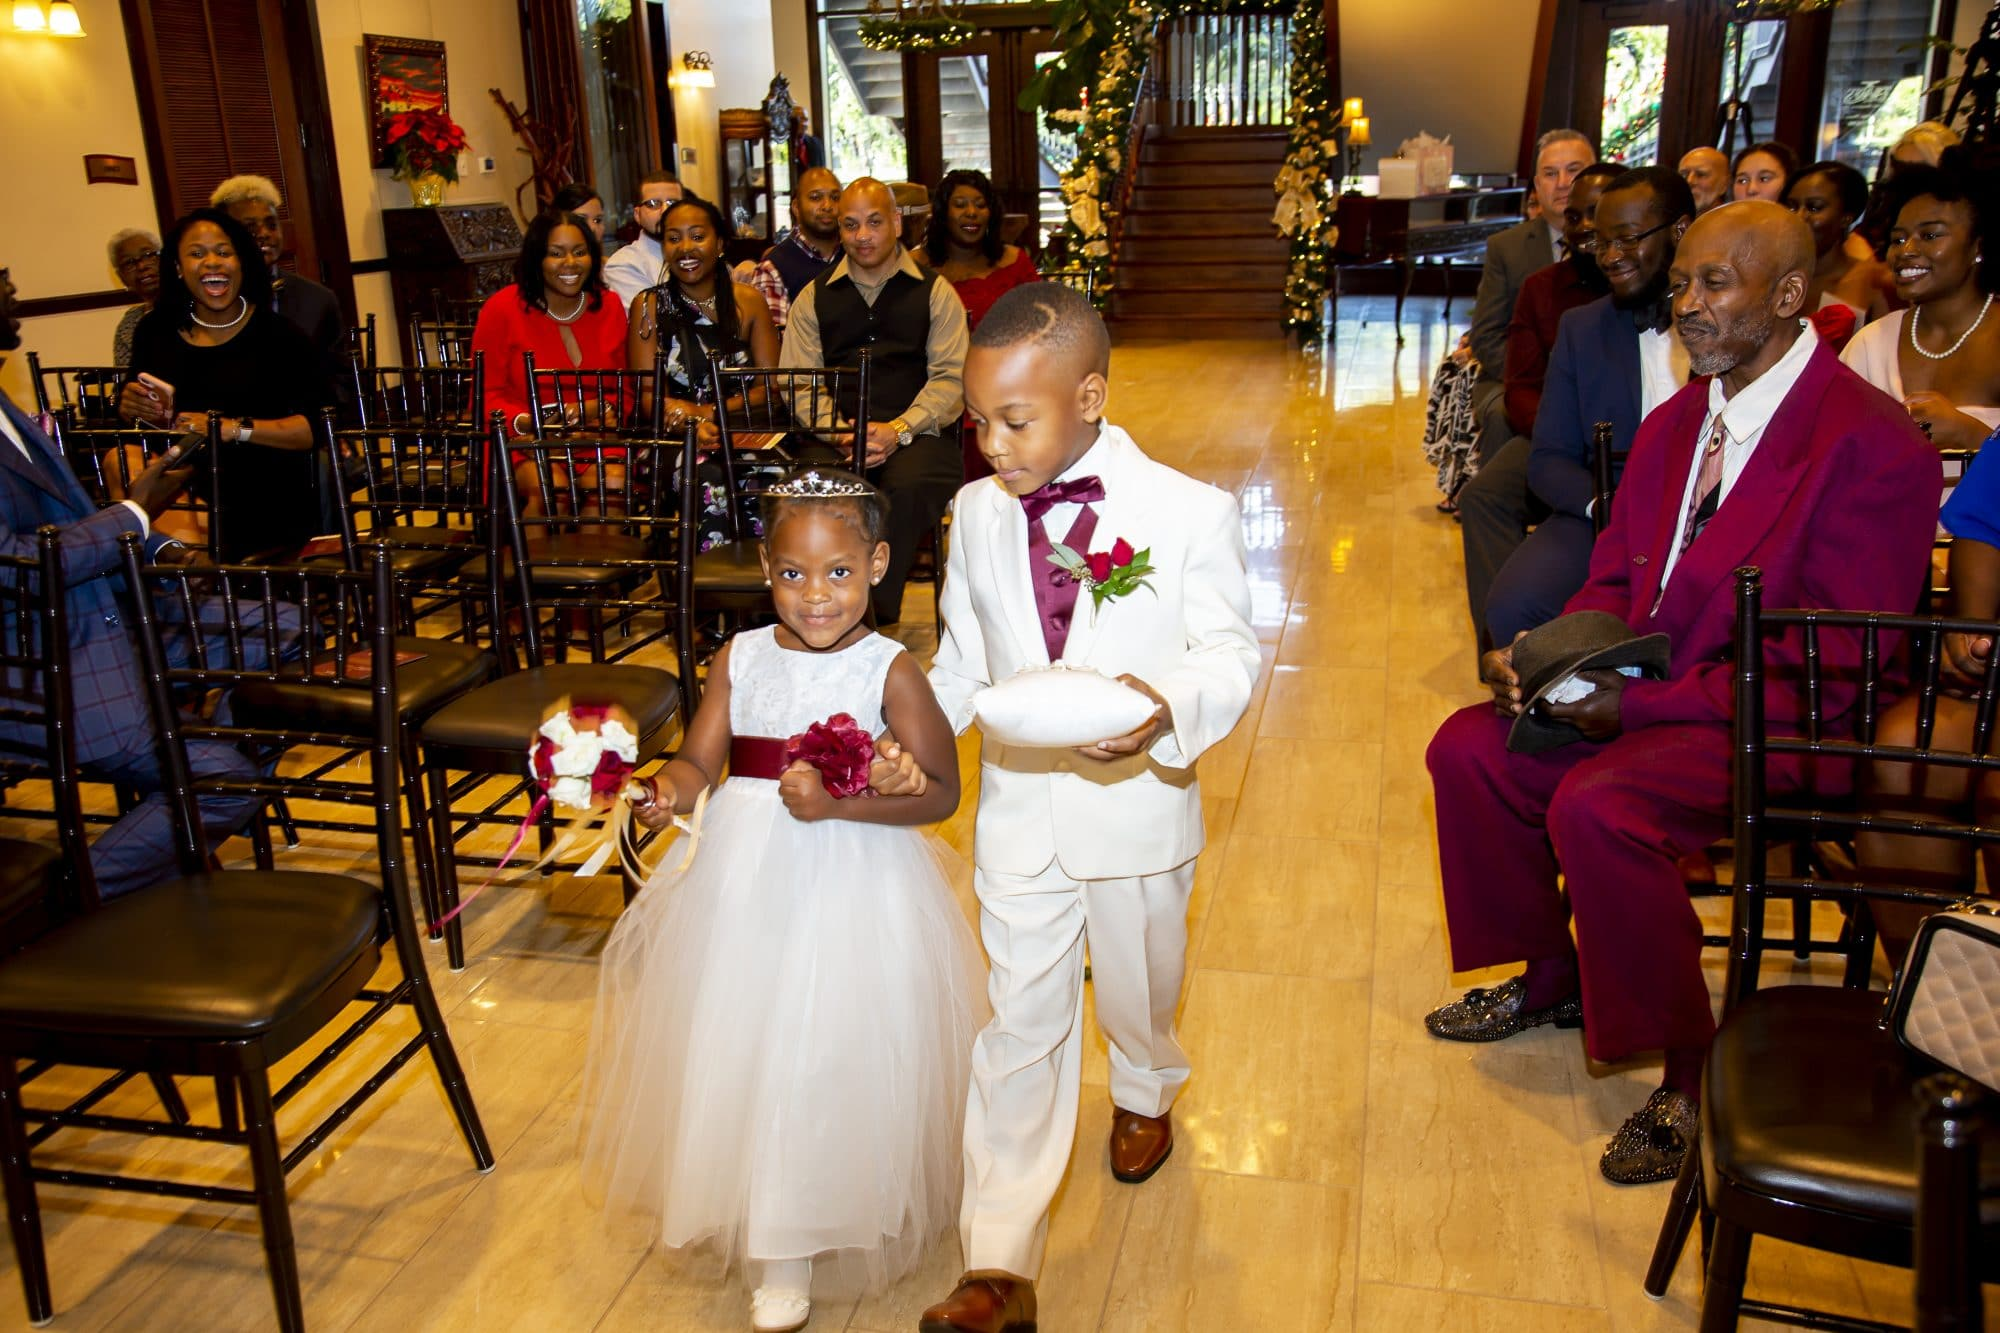 The happy couple's two kids acted as flower girl and ring bearer!